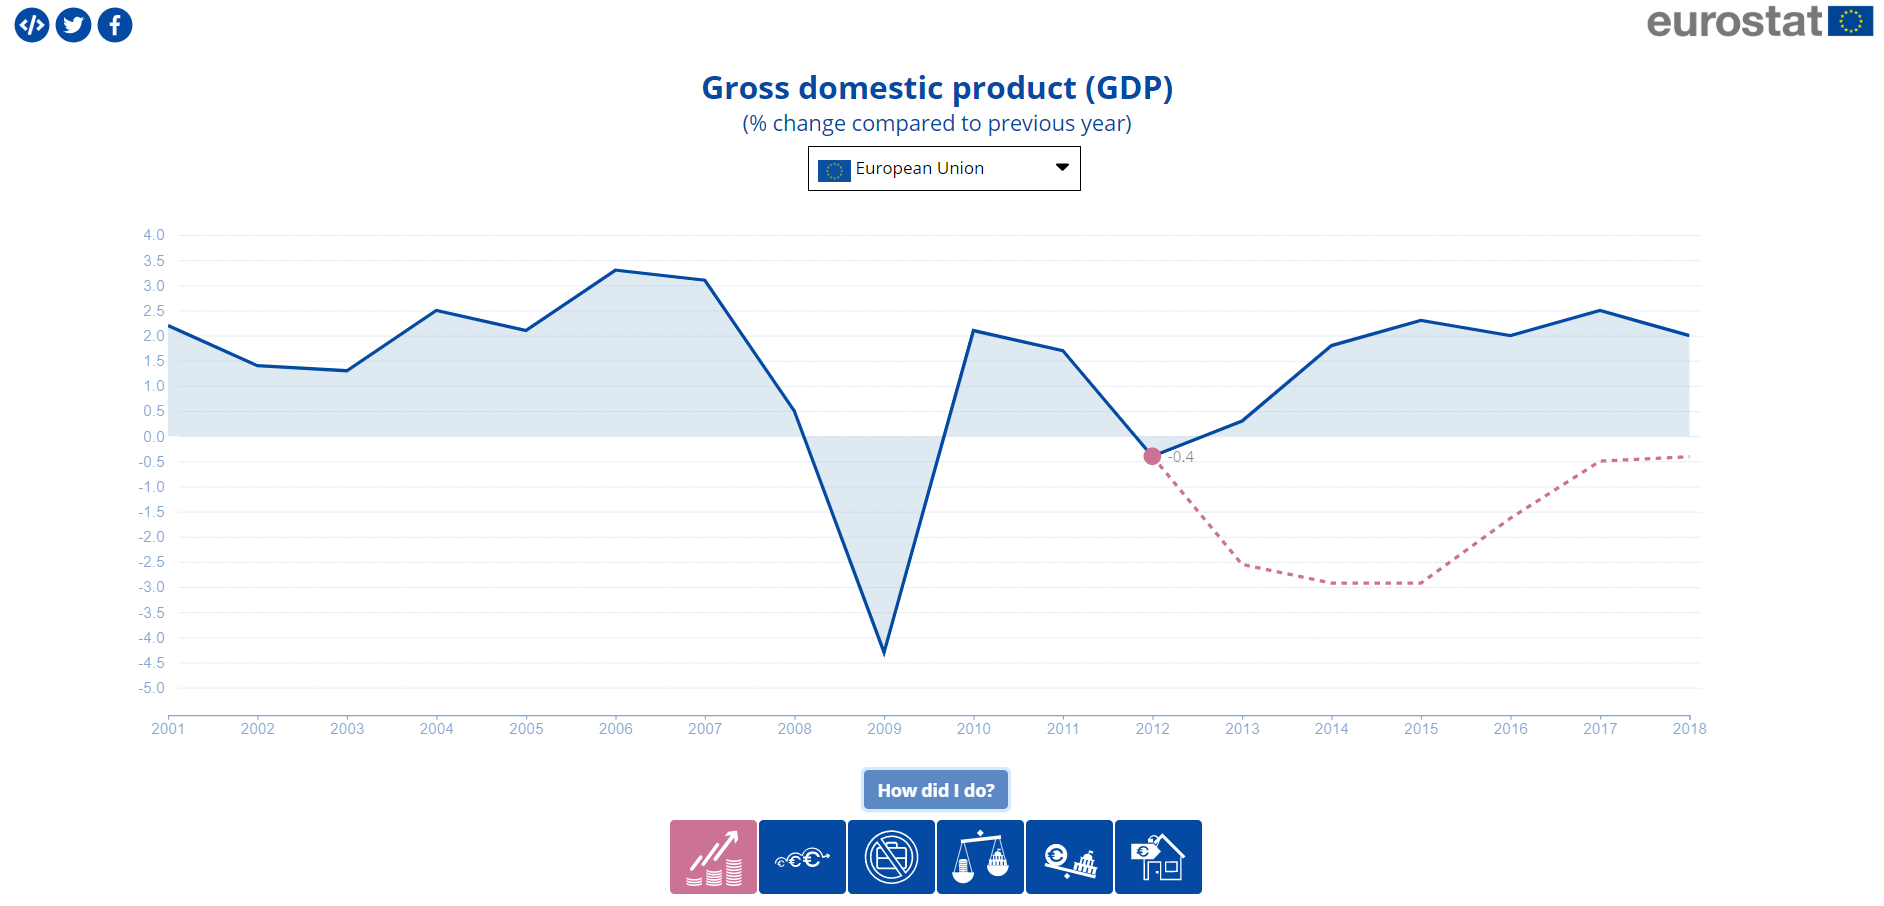 Visualisation tool to compare forecast and actual GDP figures